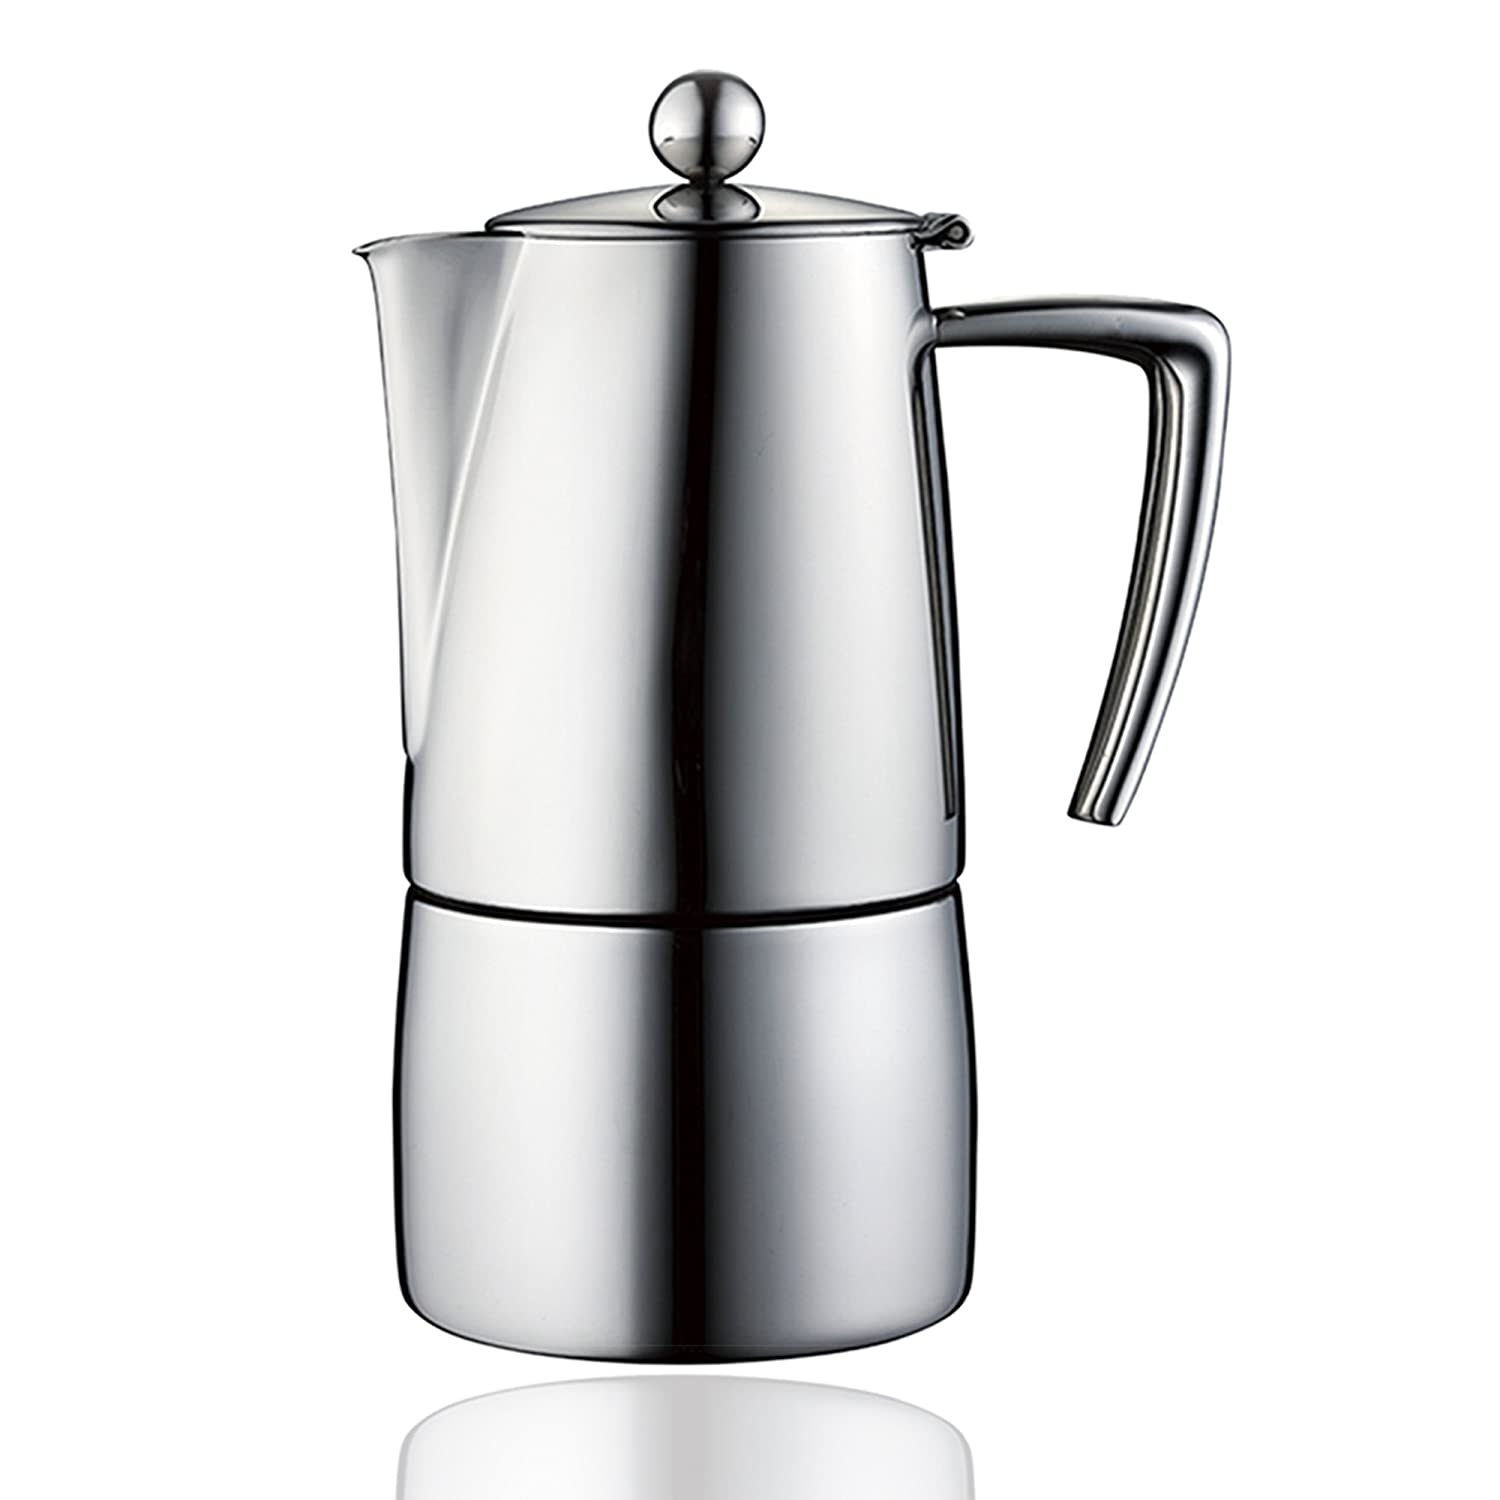 Minos Moka Pot Espresso Maker: Makes 4 Espresso Shots Suitable for Ceramic, Gas and Electric Stovetop - Stainless Steel With Flat Bottom and Heatproof Handle, Wear and Scratch-Resistant 4335901229